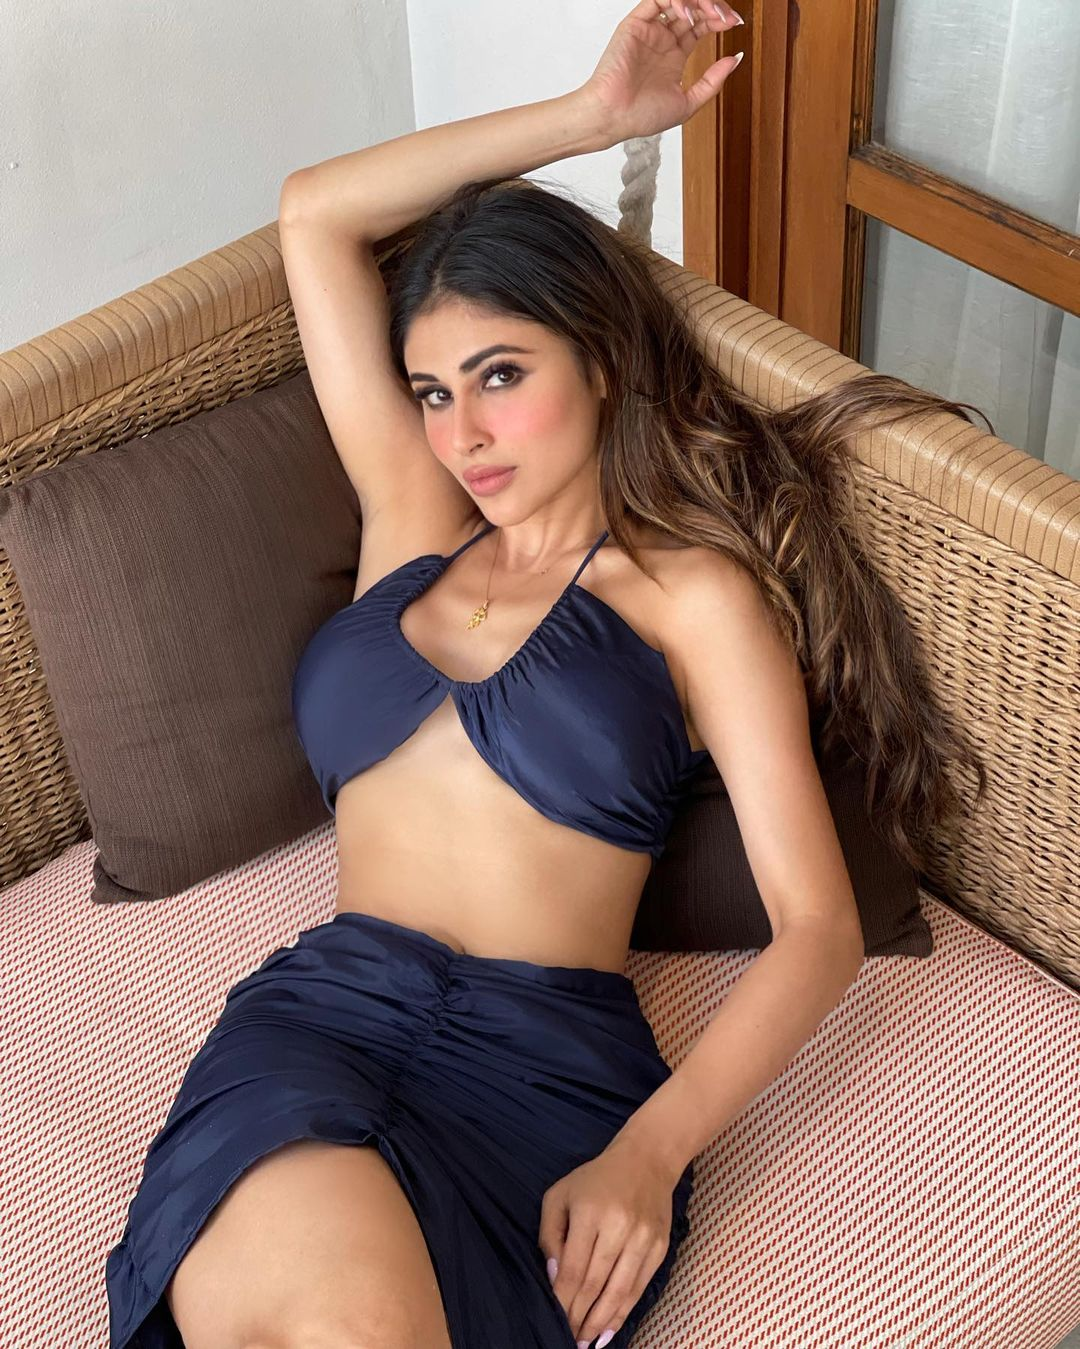 Mouni Roy is looking sensational in the black bikini top and matching skirt.